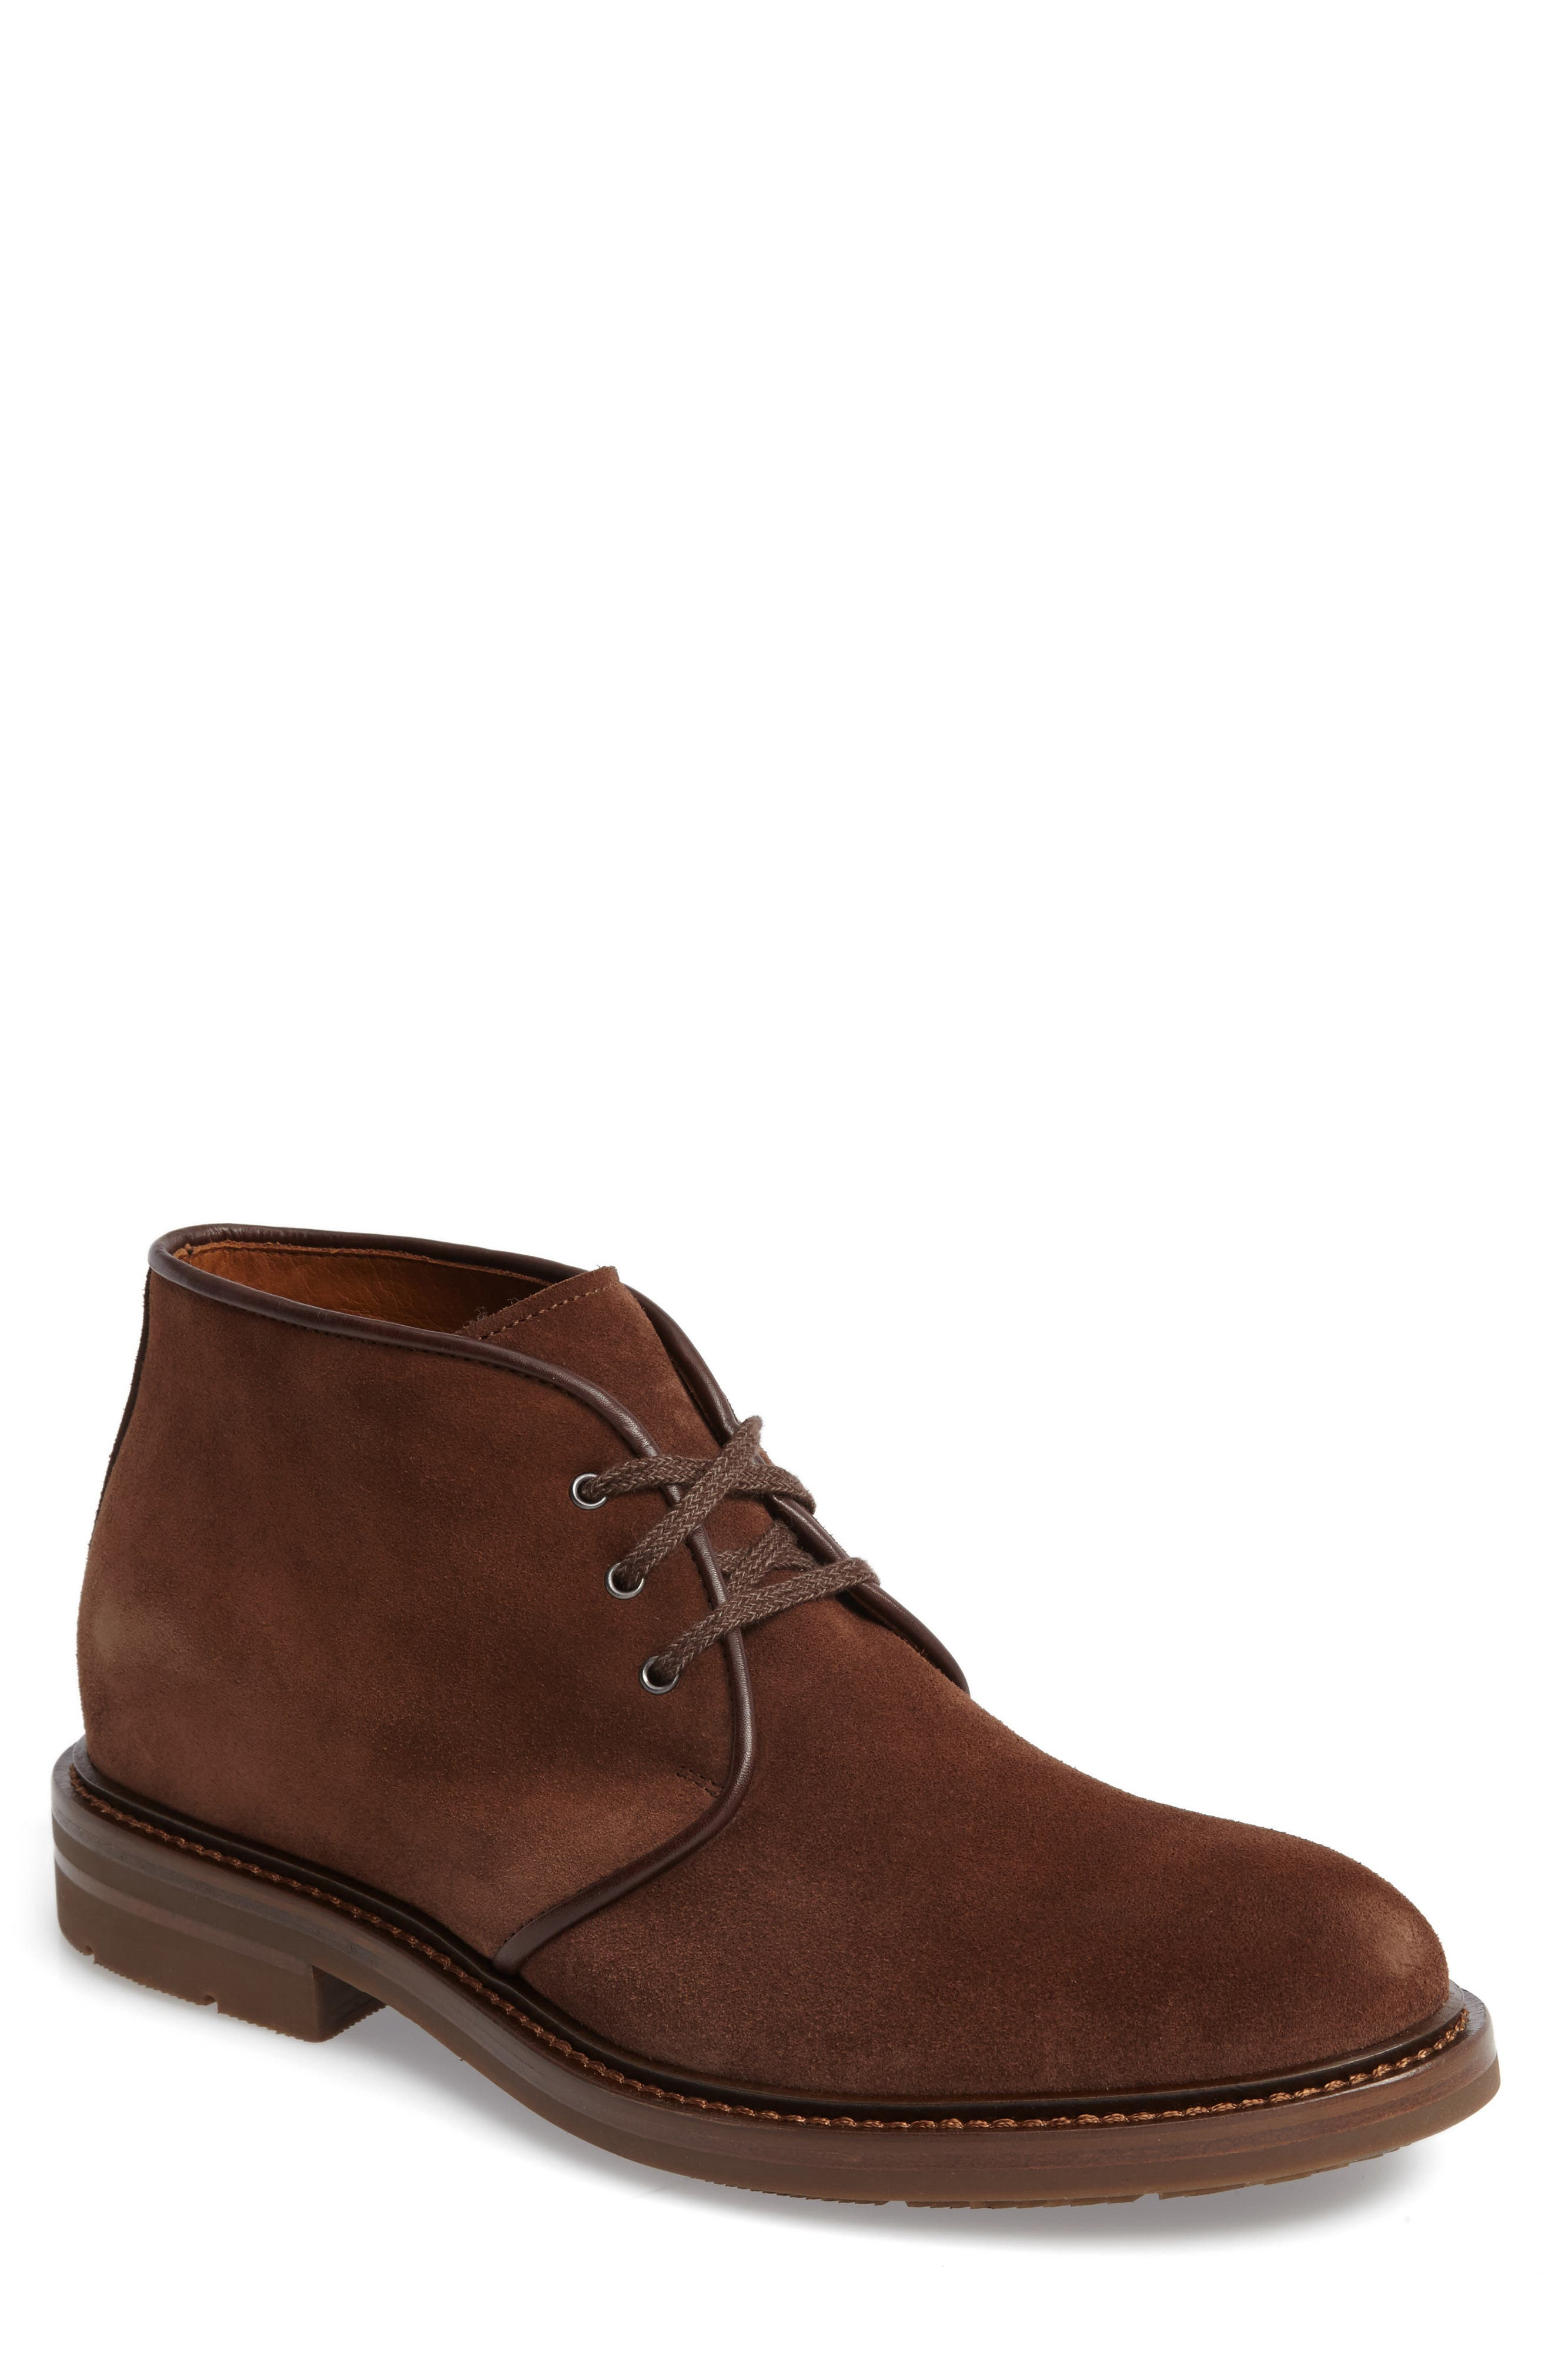 Main Image - Aquatalia Raphael Chukka Boot (Men)